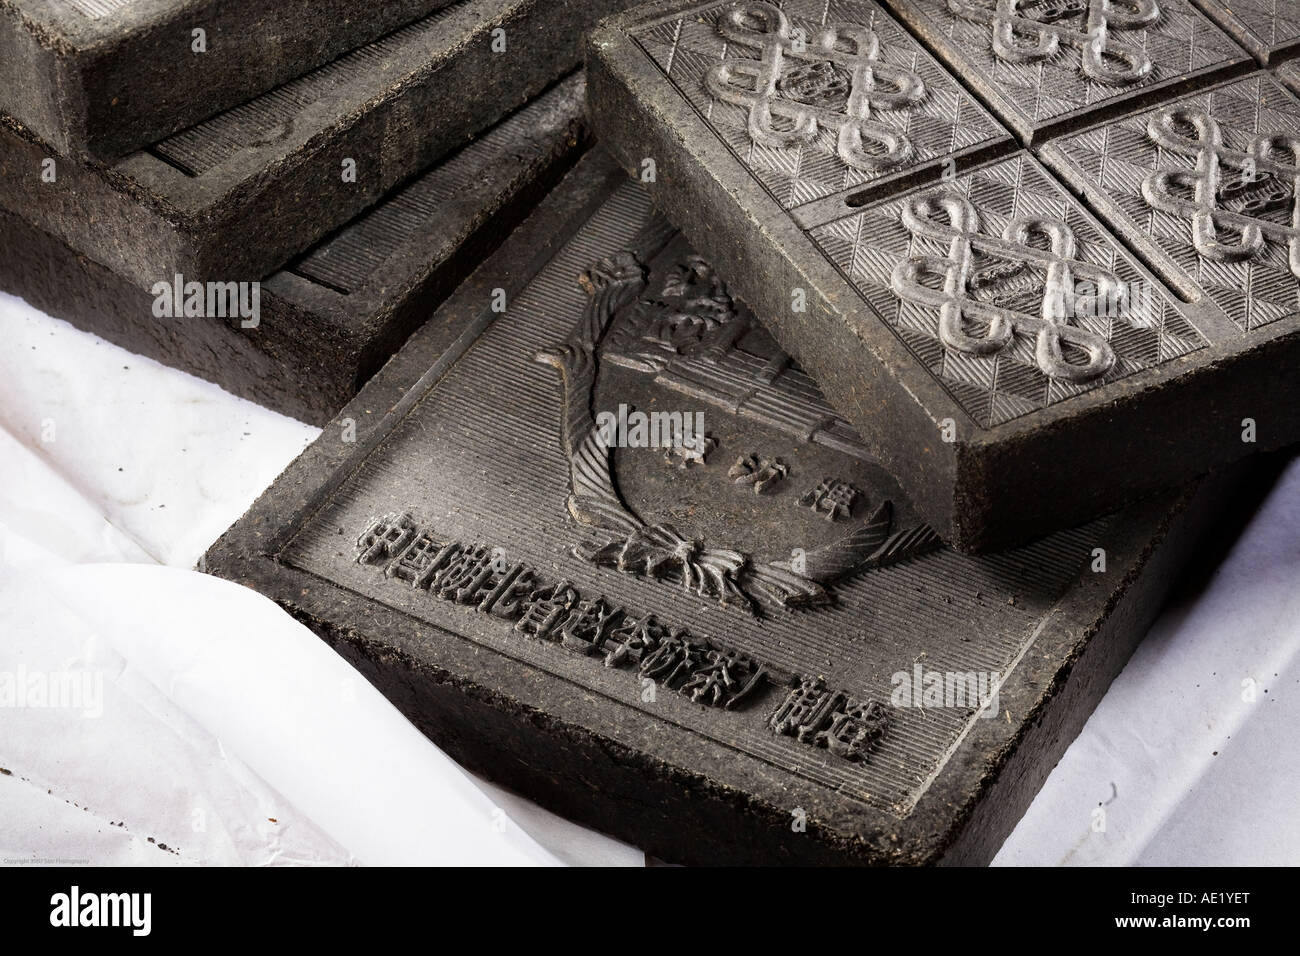 Richly embossed tea bricks stacked atop one another. Stock Photo